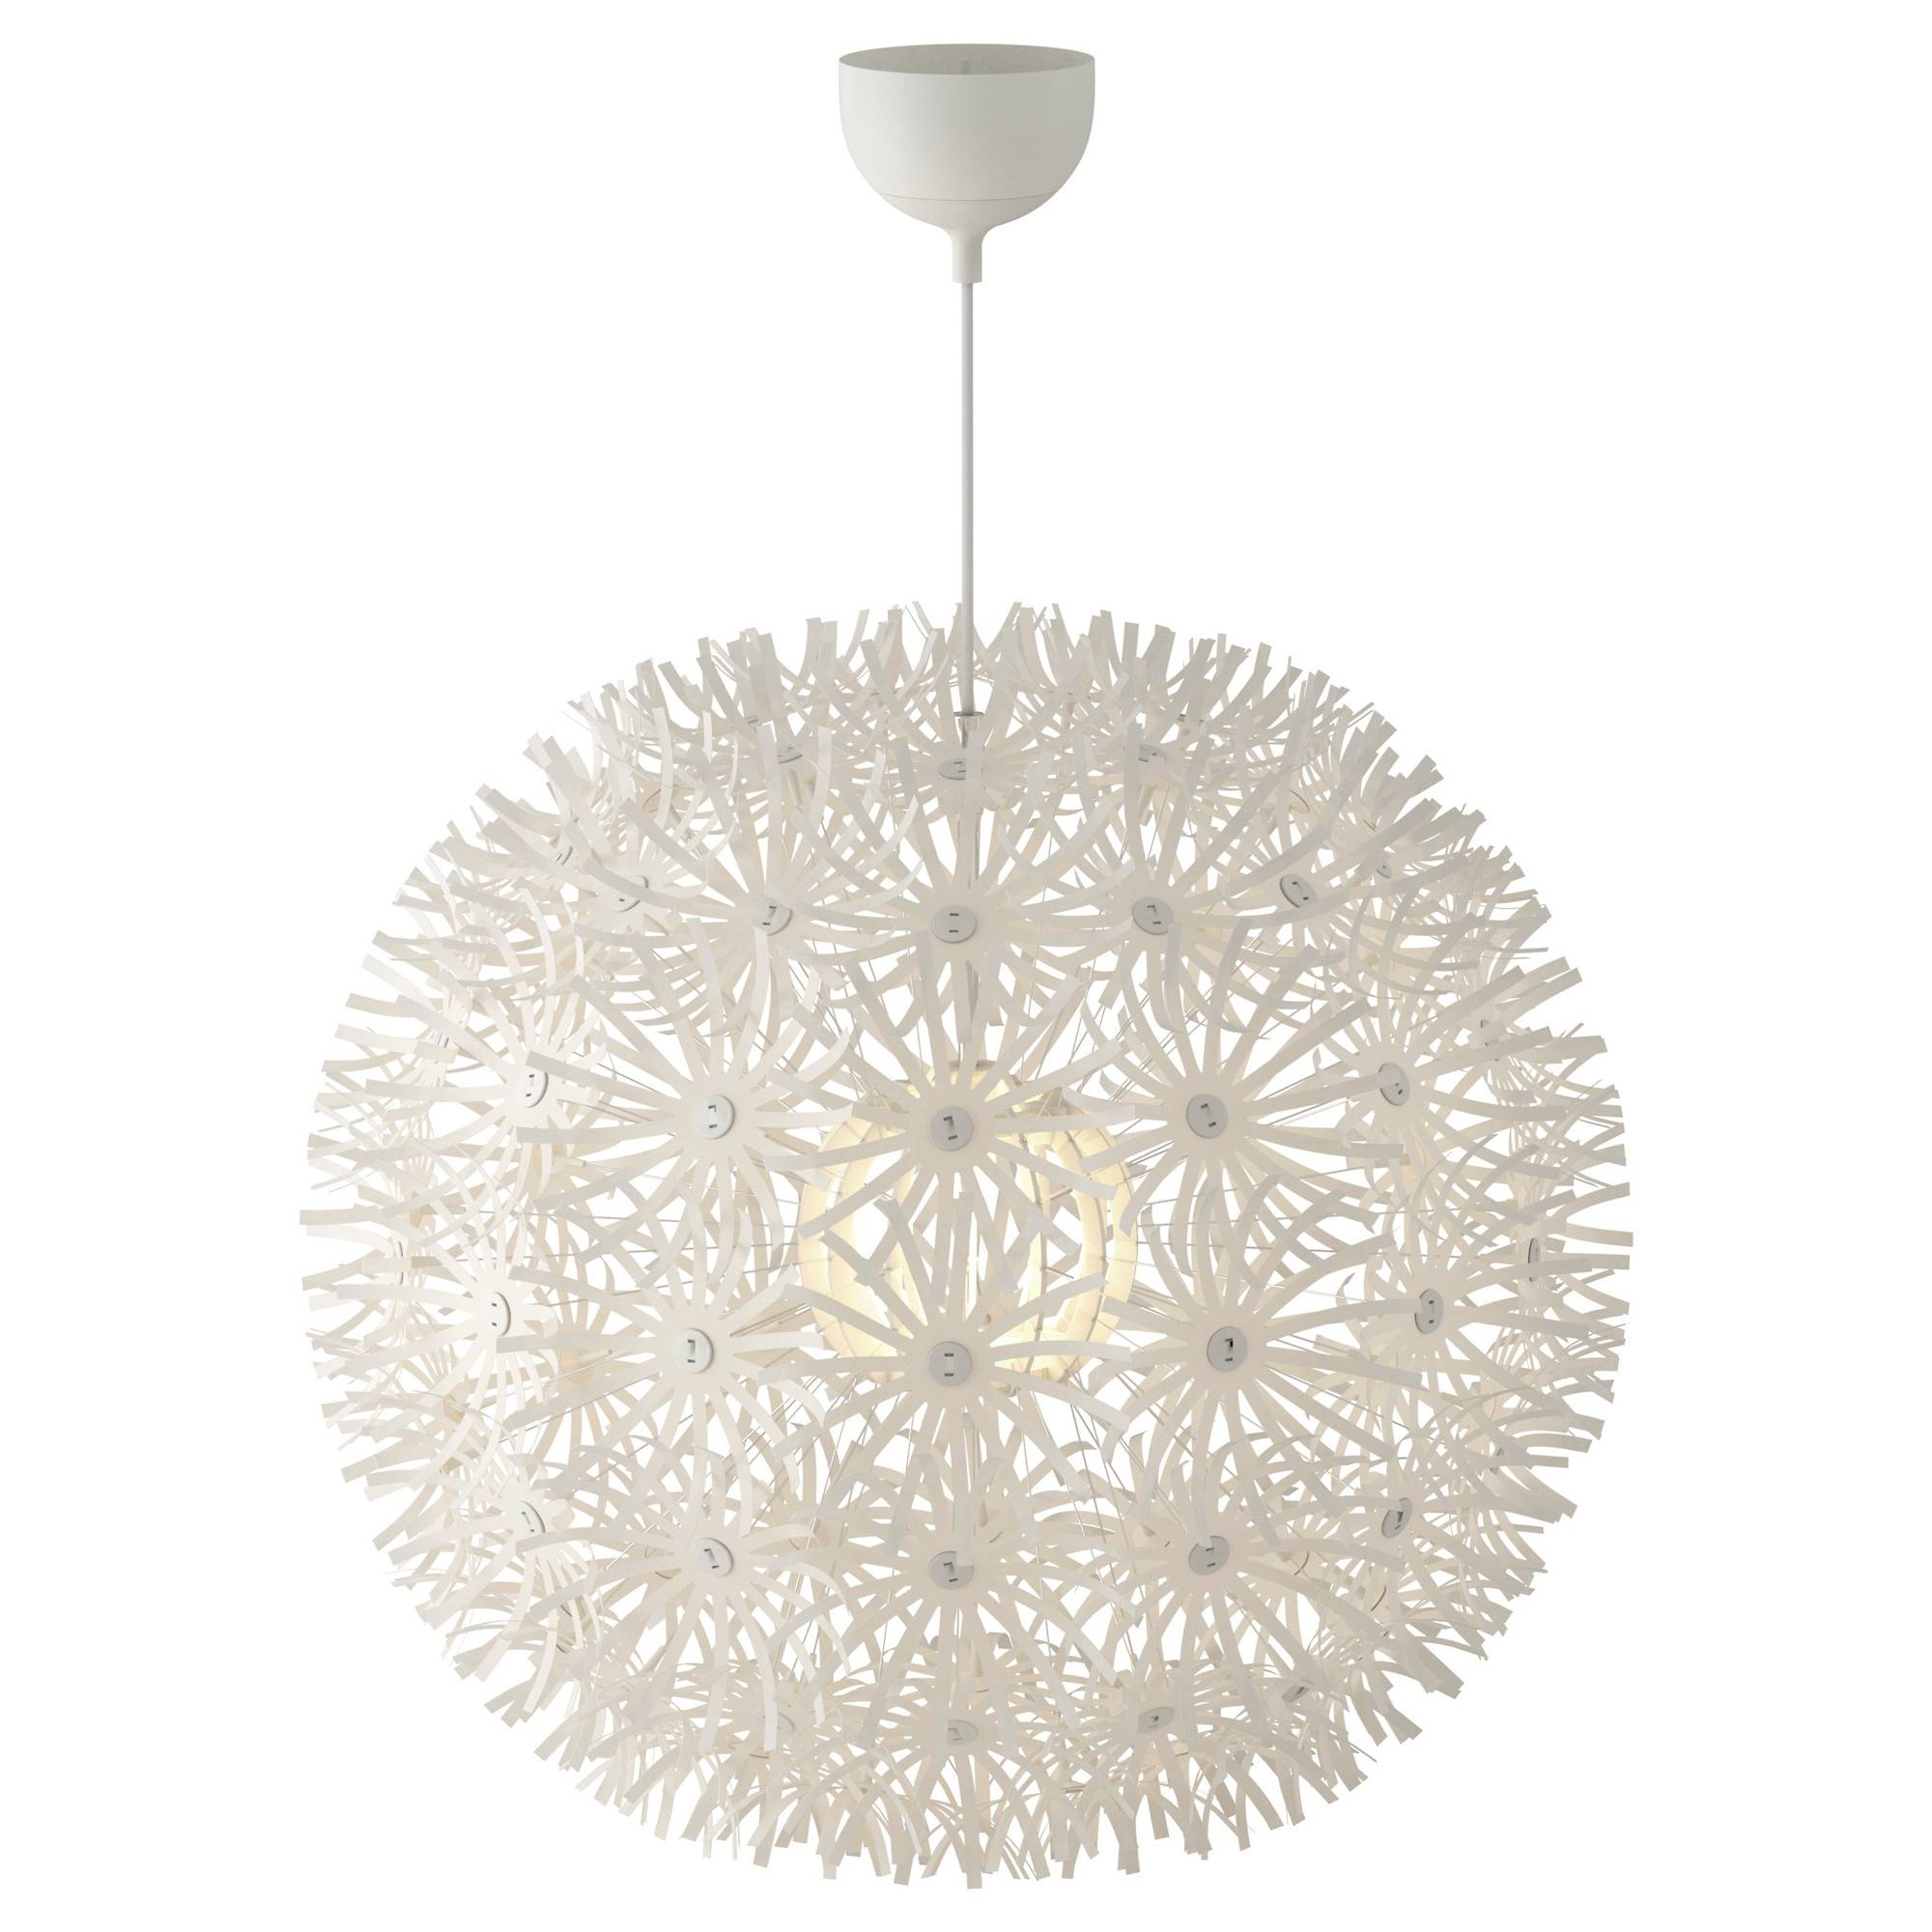 Maskros Pendant Lamp 55 Cm - Ikea regarding White Flower Pendant Lights (Image 9 of 15)